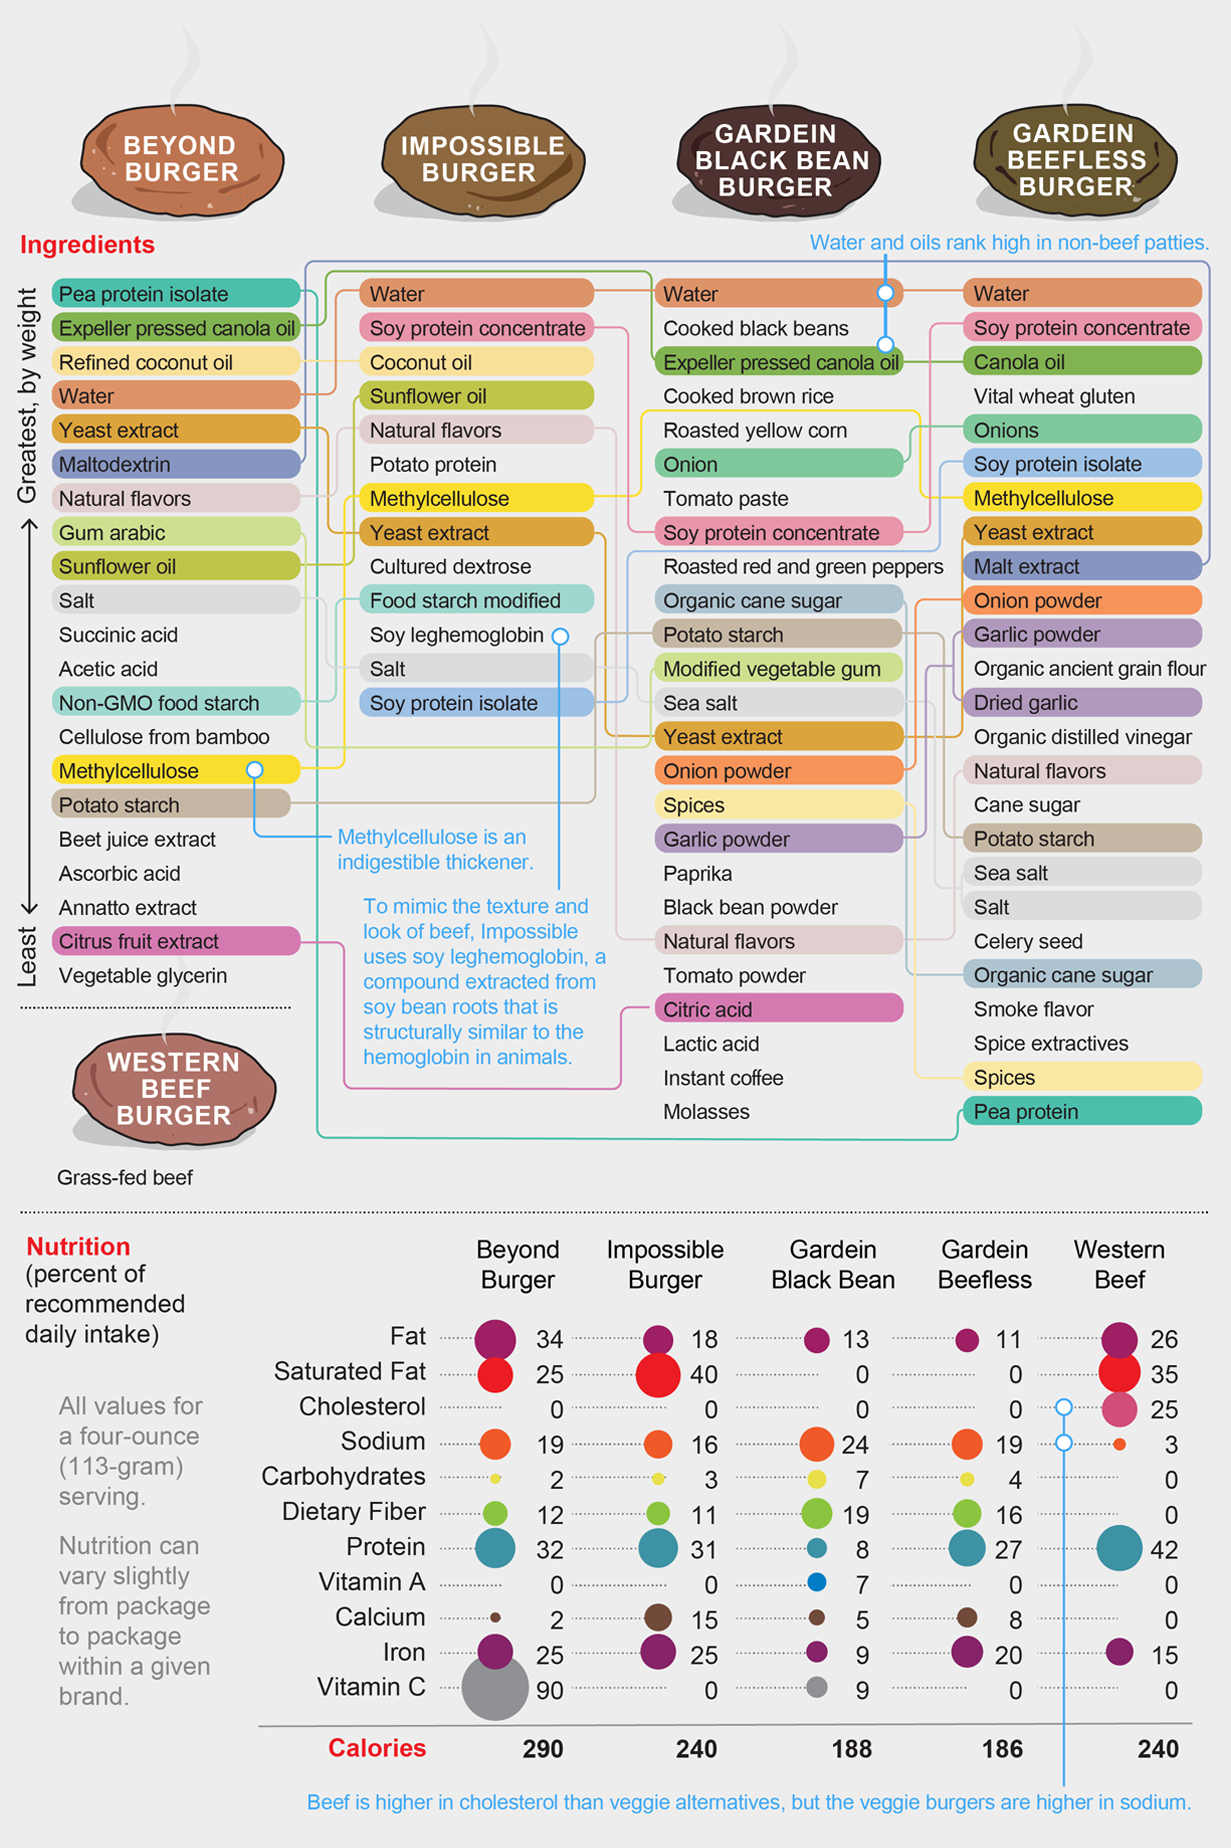 Graphic compares ingredient lists and nutritional information for Beyond, Impossible, Gardein Black Bean, Gardein Beefless, and Western Beef burgers.